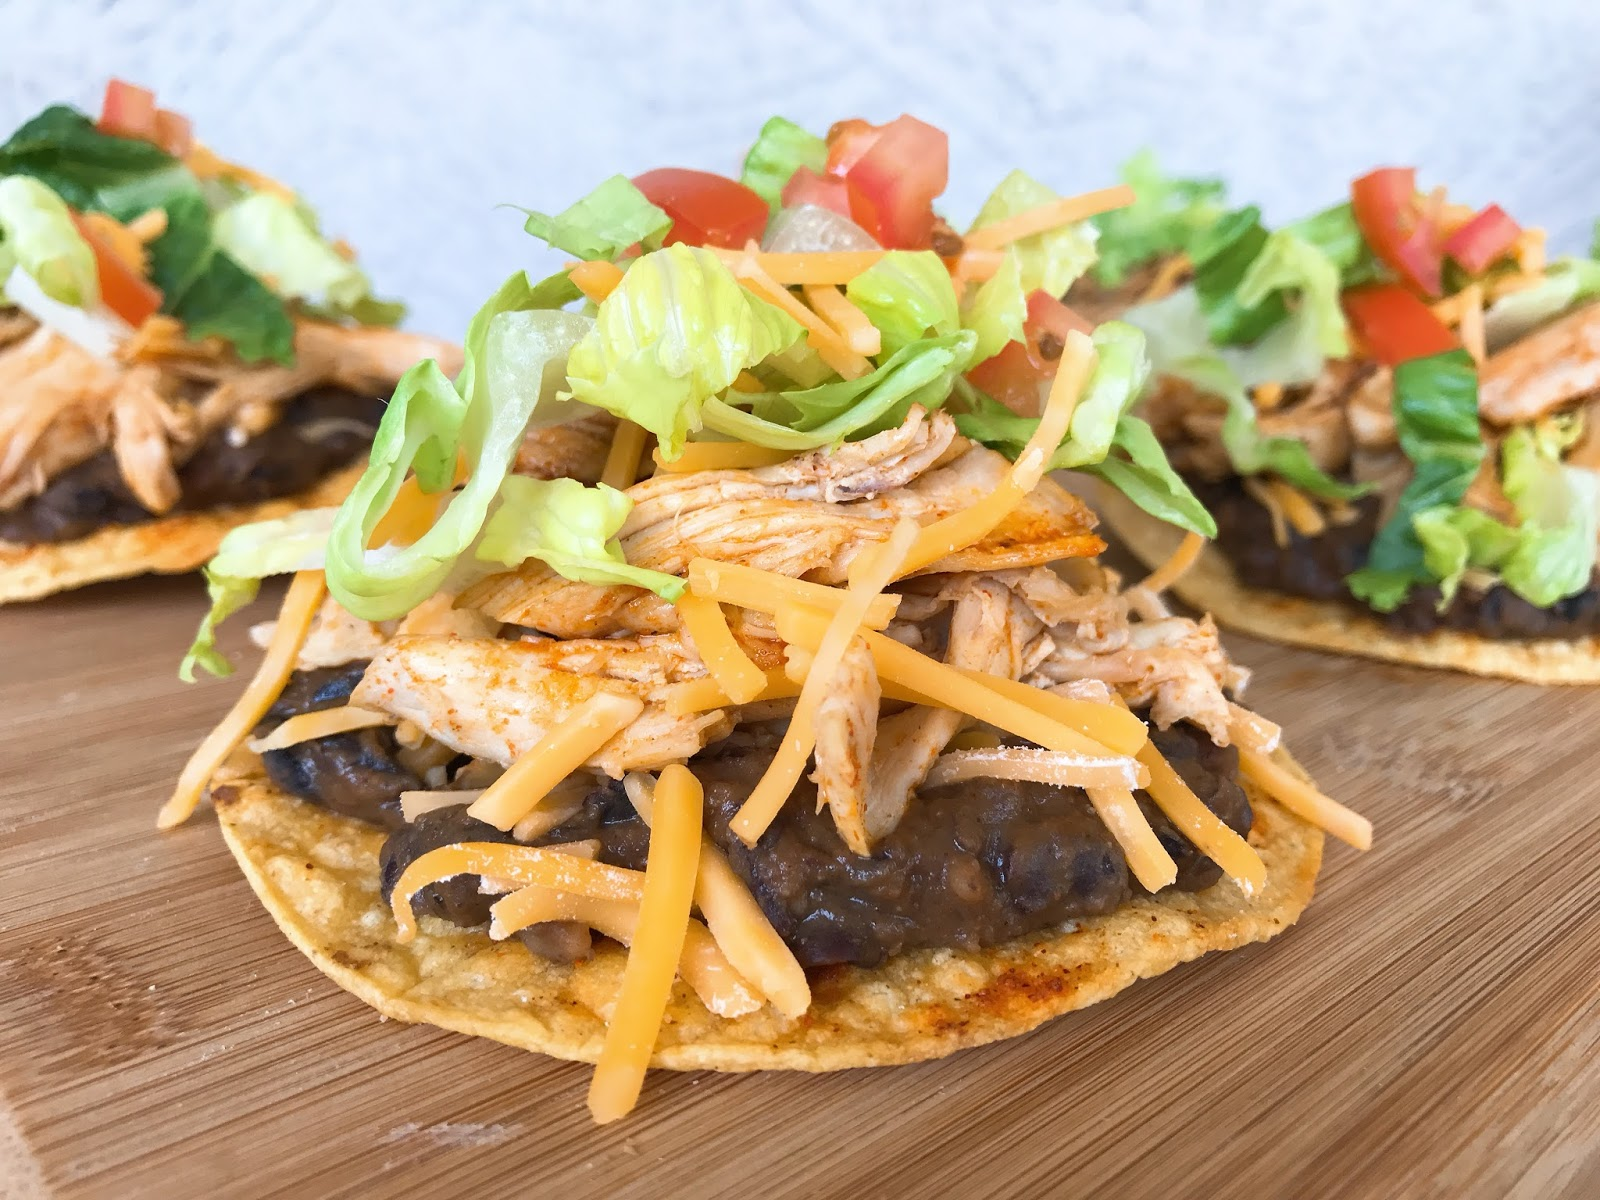 Tostadas With Refried Black Beans Chicken And Cheddar